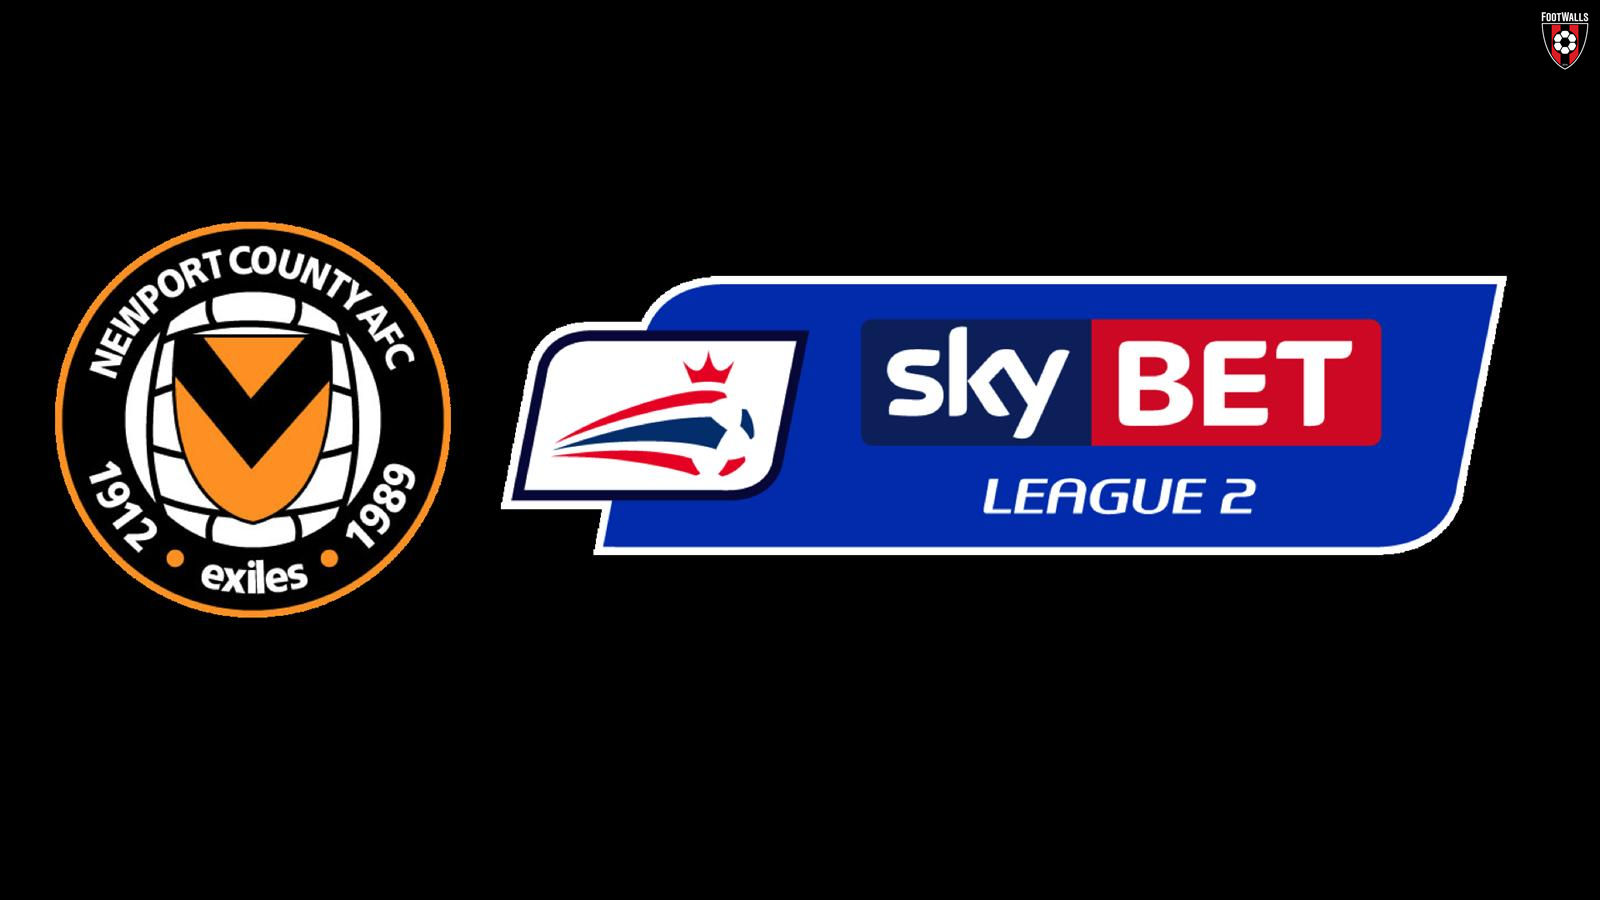 Newport County Wallpapers Clubs Football Wallpapers